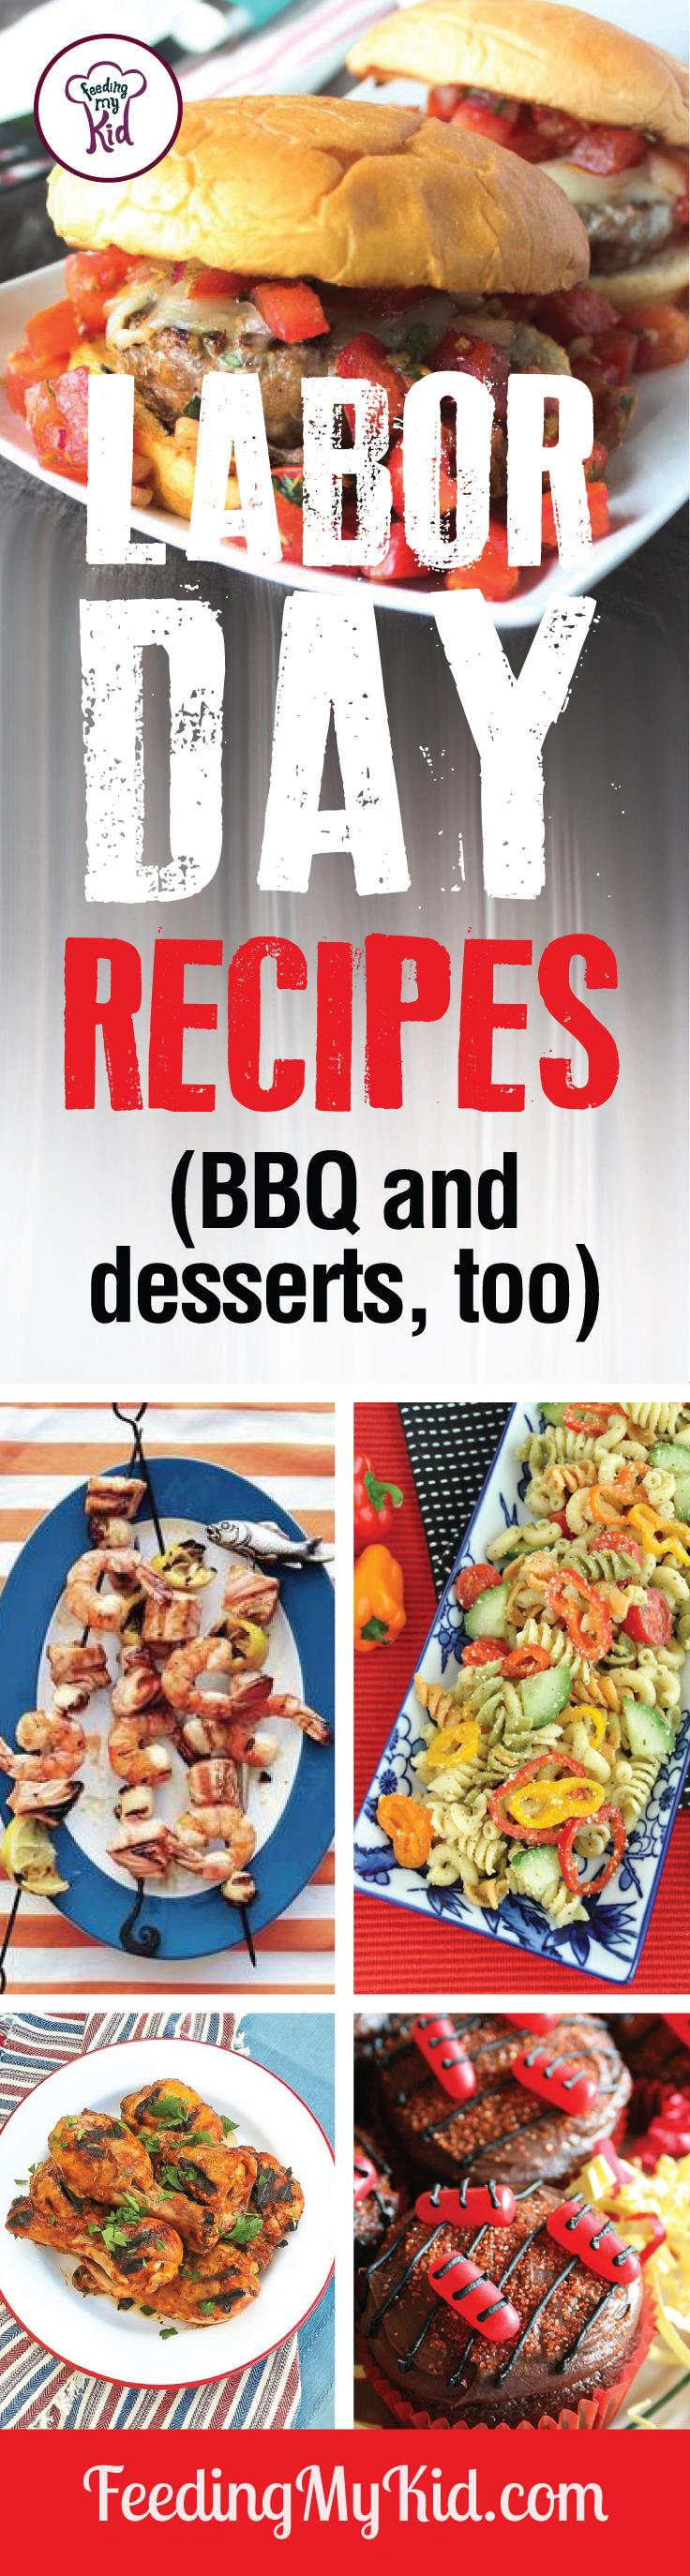 Labor Day is almost here! Time to celebrate! Try these amazing Labor Day recipes that are perfect for the holiday. Feeding My Kid is filled with all the information you need about how to raise your kids, from healthy tips to nutritious recipes. #FeedingMyKid #summerrecipes #LaborDay #BBQ #holidayrecipes